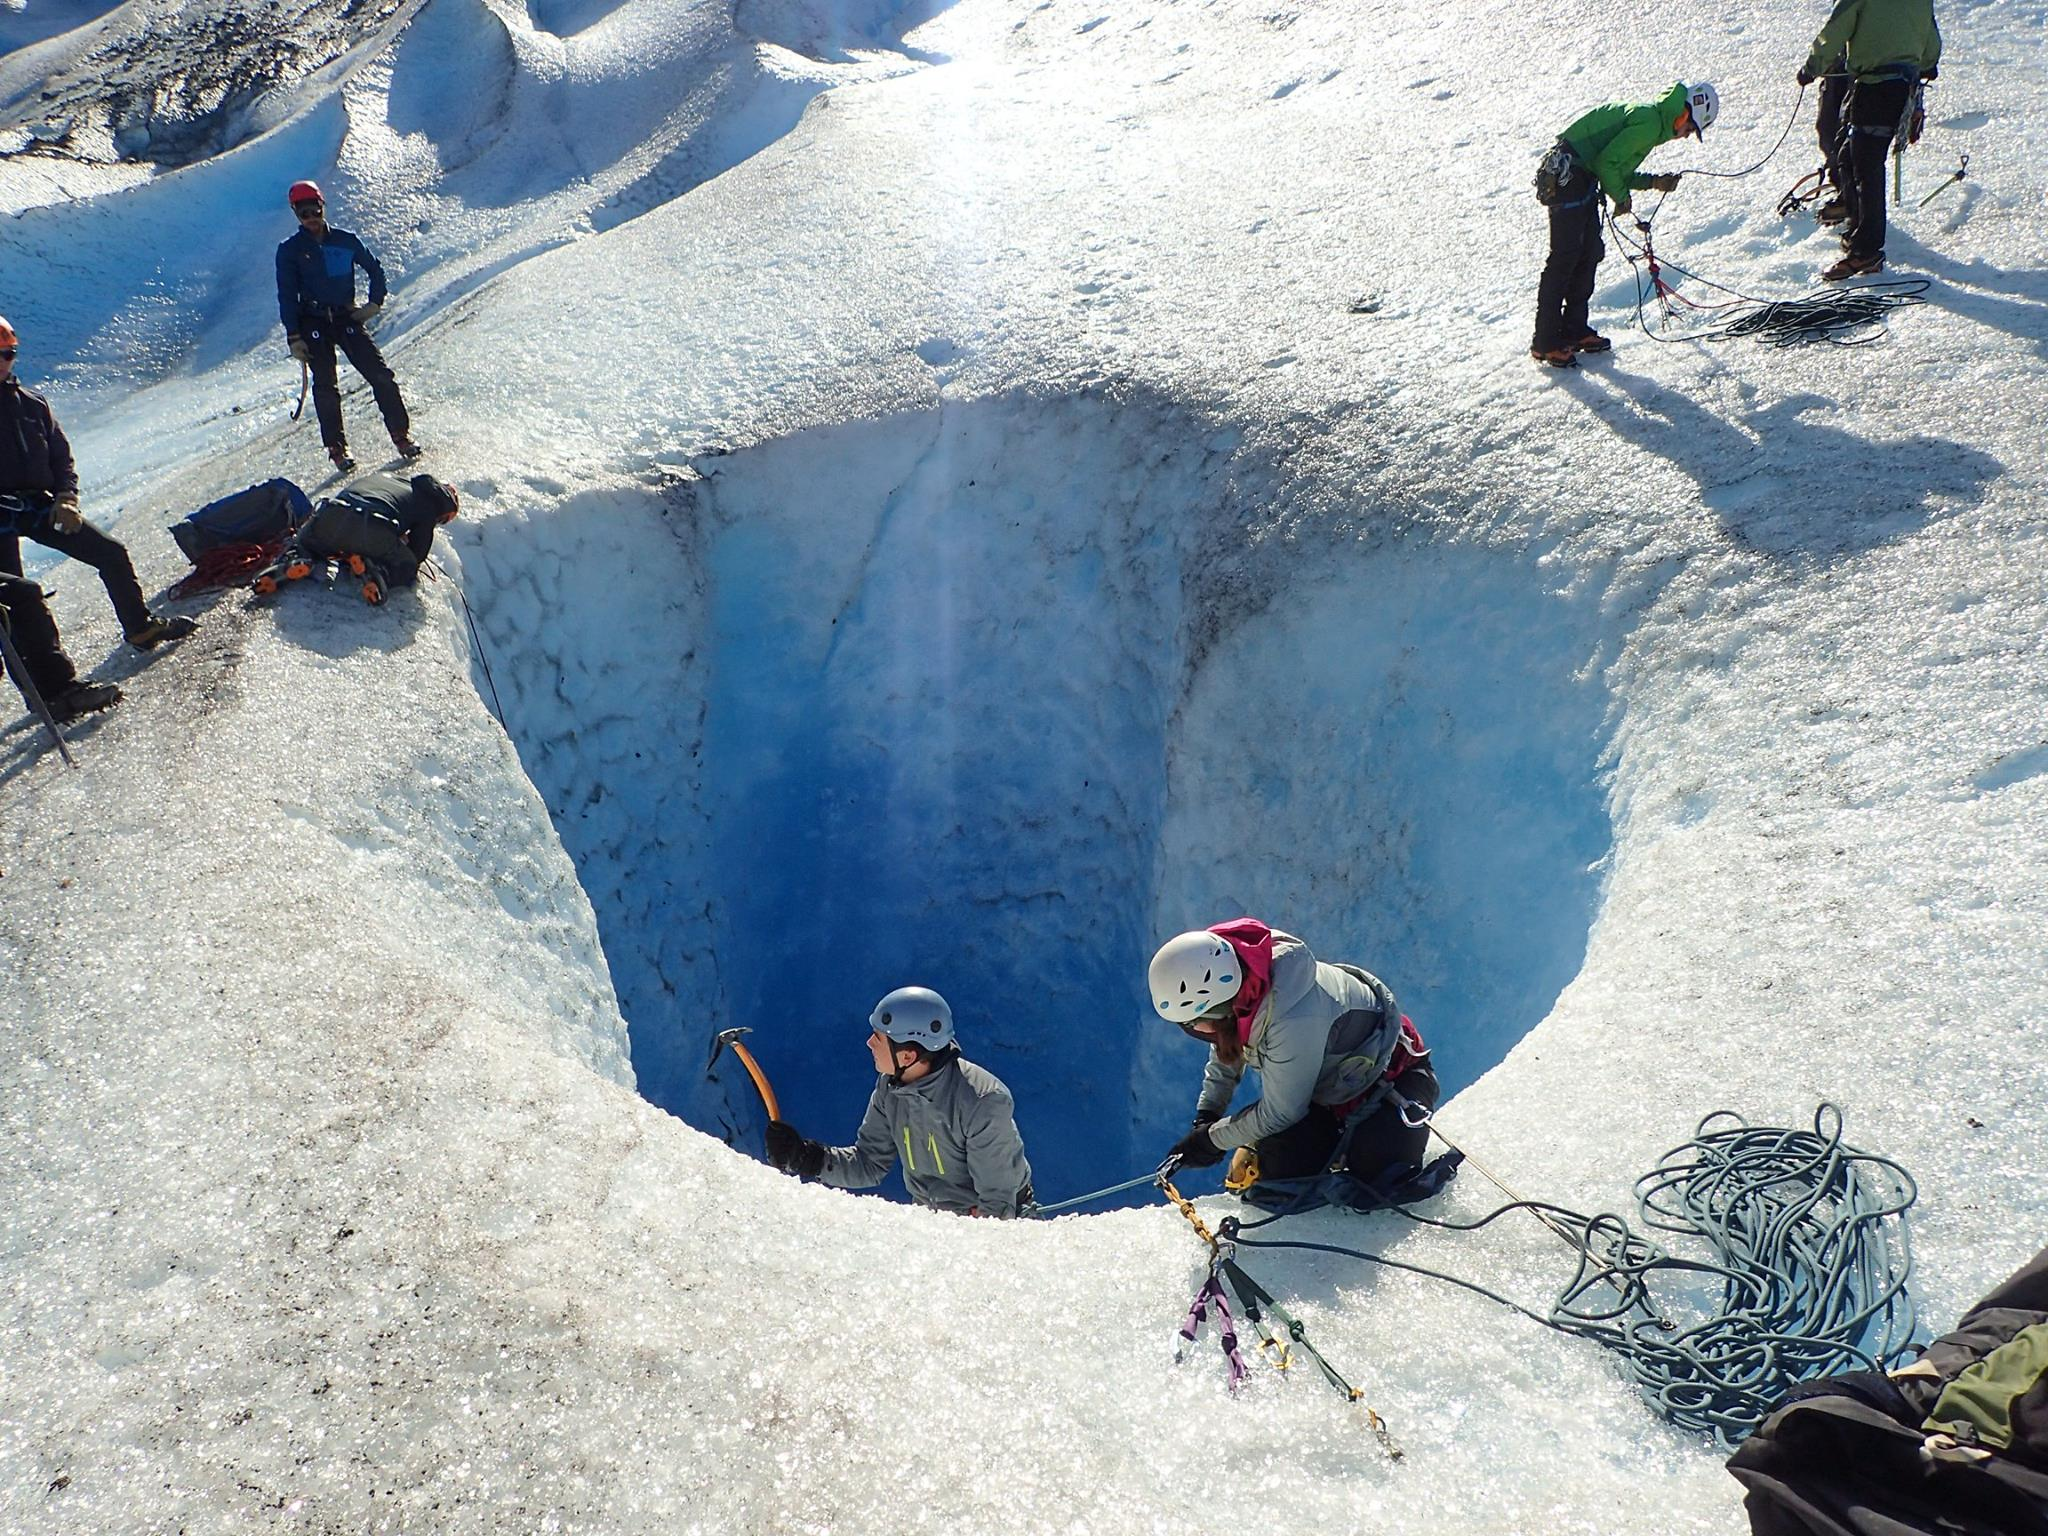 Scouts explore fascinating features formed by the glacier